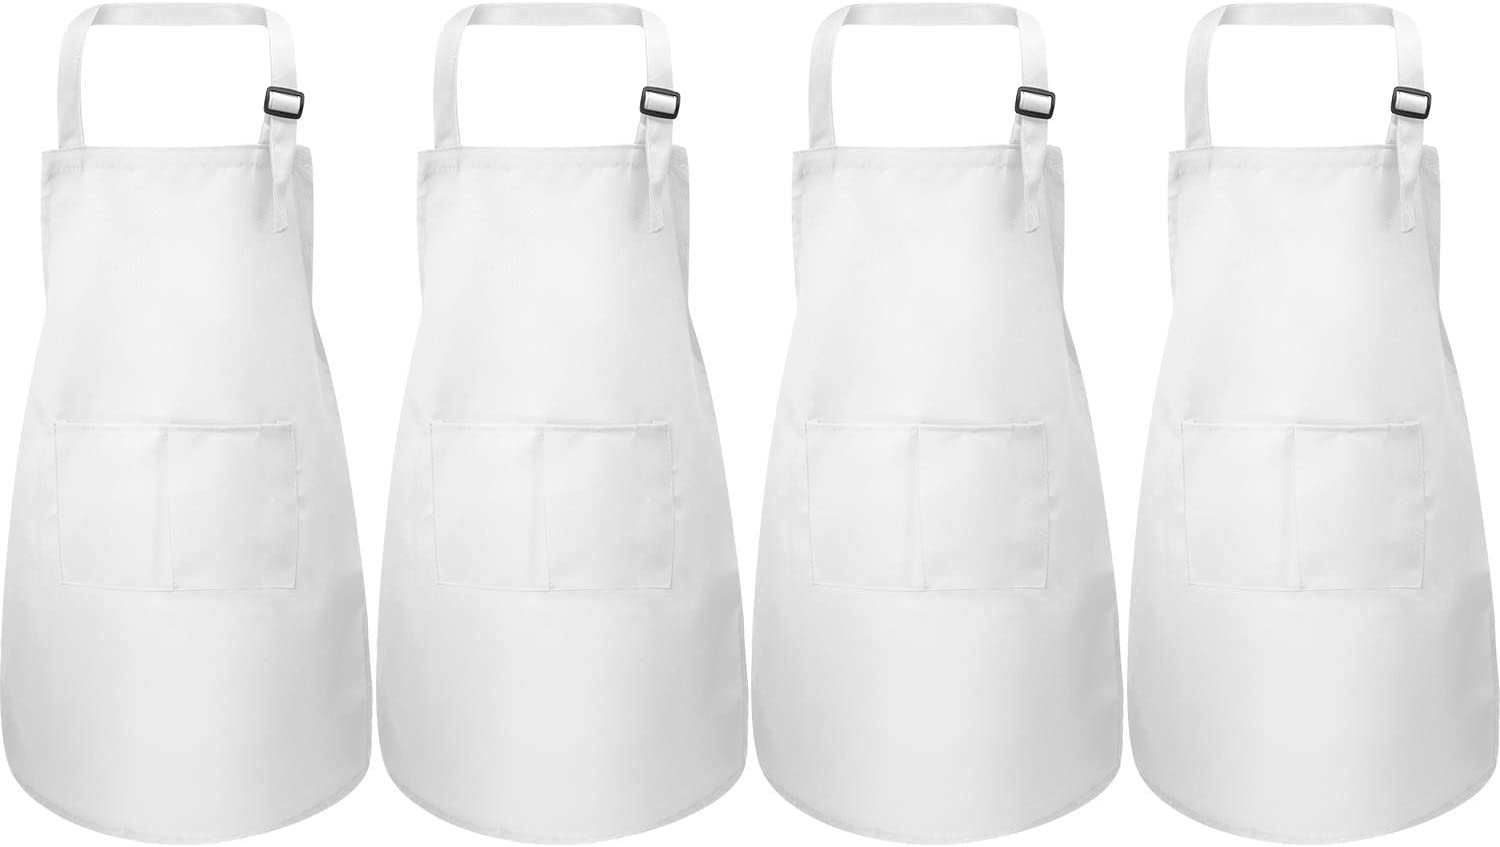 Yaomiao 4 Pieces Kids Apron with Pocket Children Adjustable Chef Apron for Cooking Baking Painting (White M for 7-13 Age)